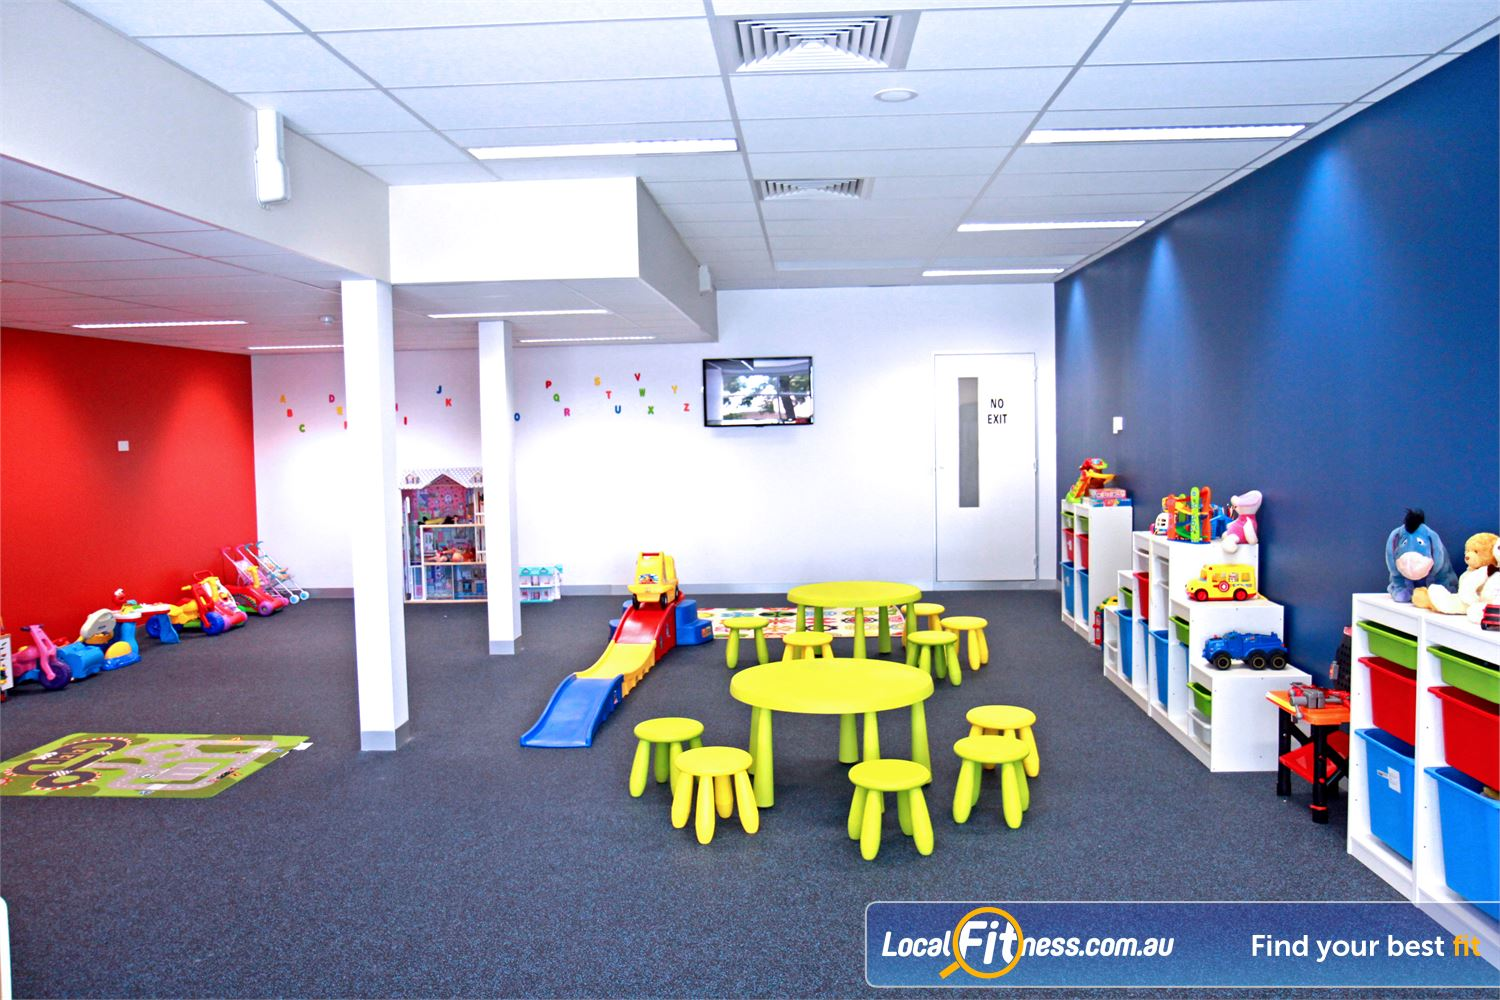 Goodlife Health Clubs Cross Roads Near Unley Park Westbourne Park child minding is part of our family friendly gym environment.